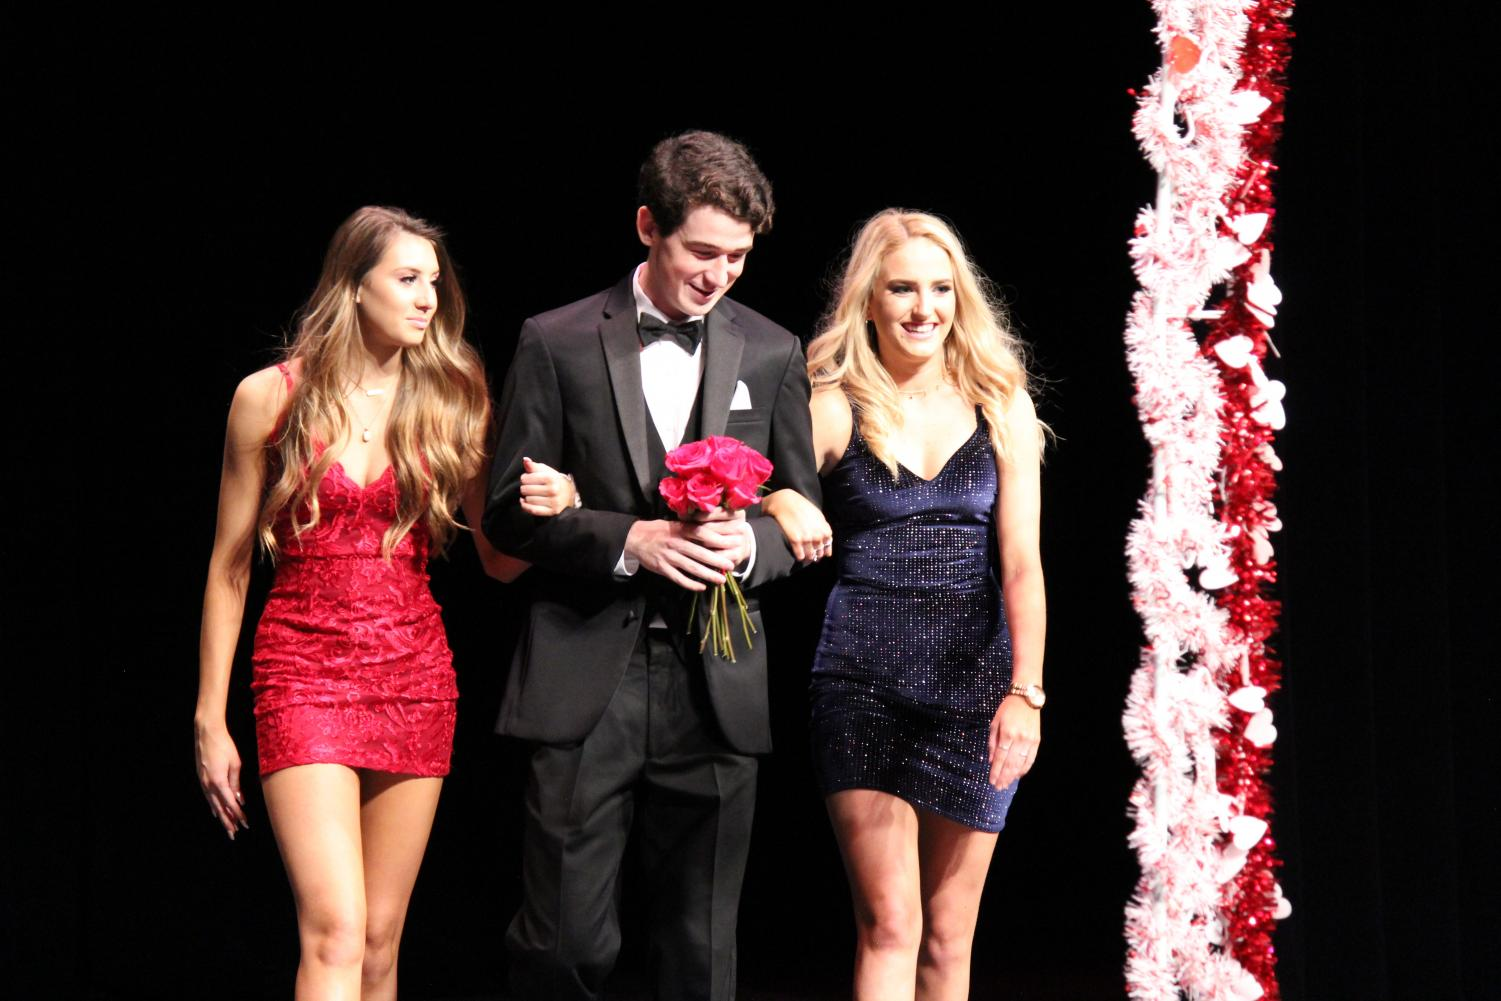 Senior+Jack+Smith+walks+with+his+escorts+as+he+holds+flowers.